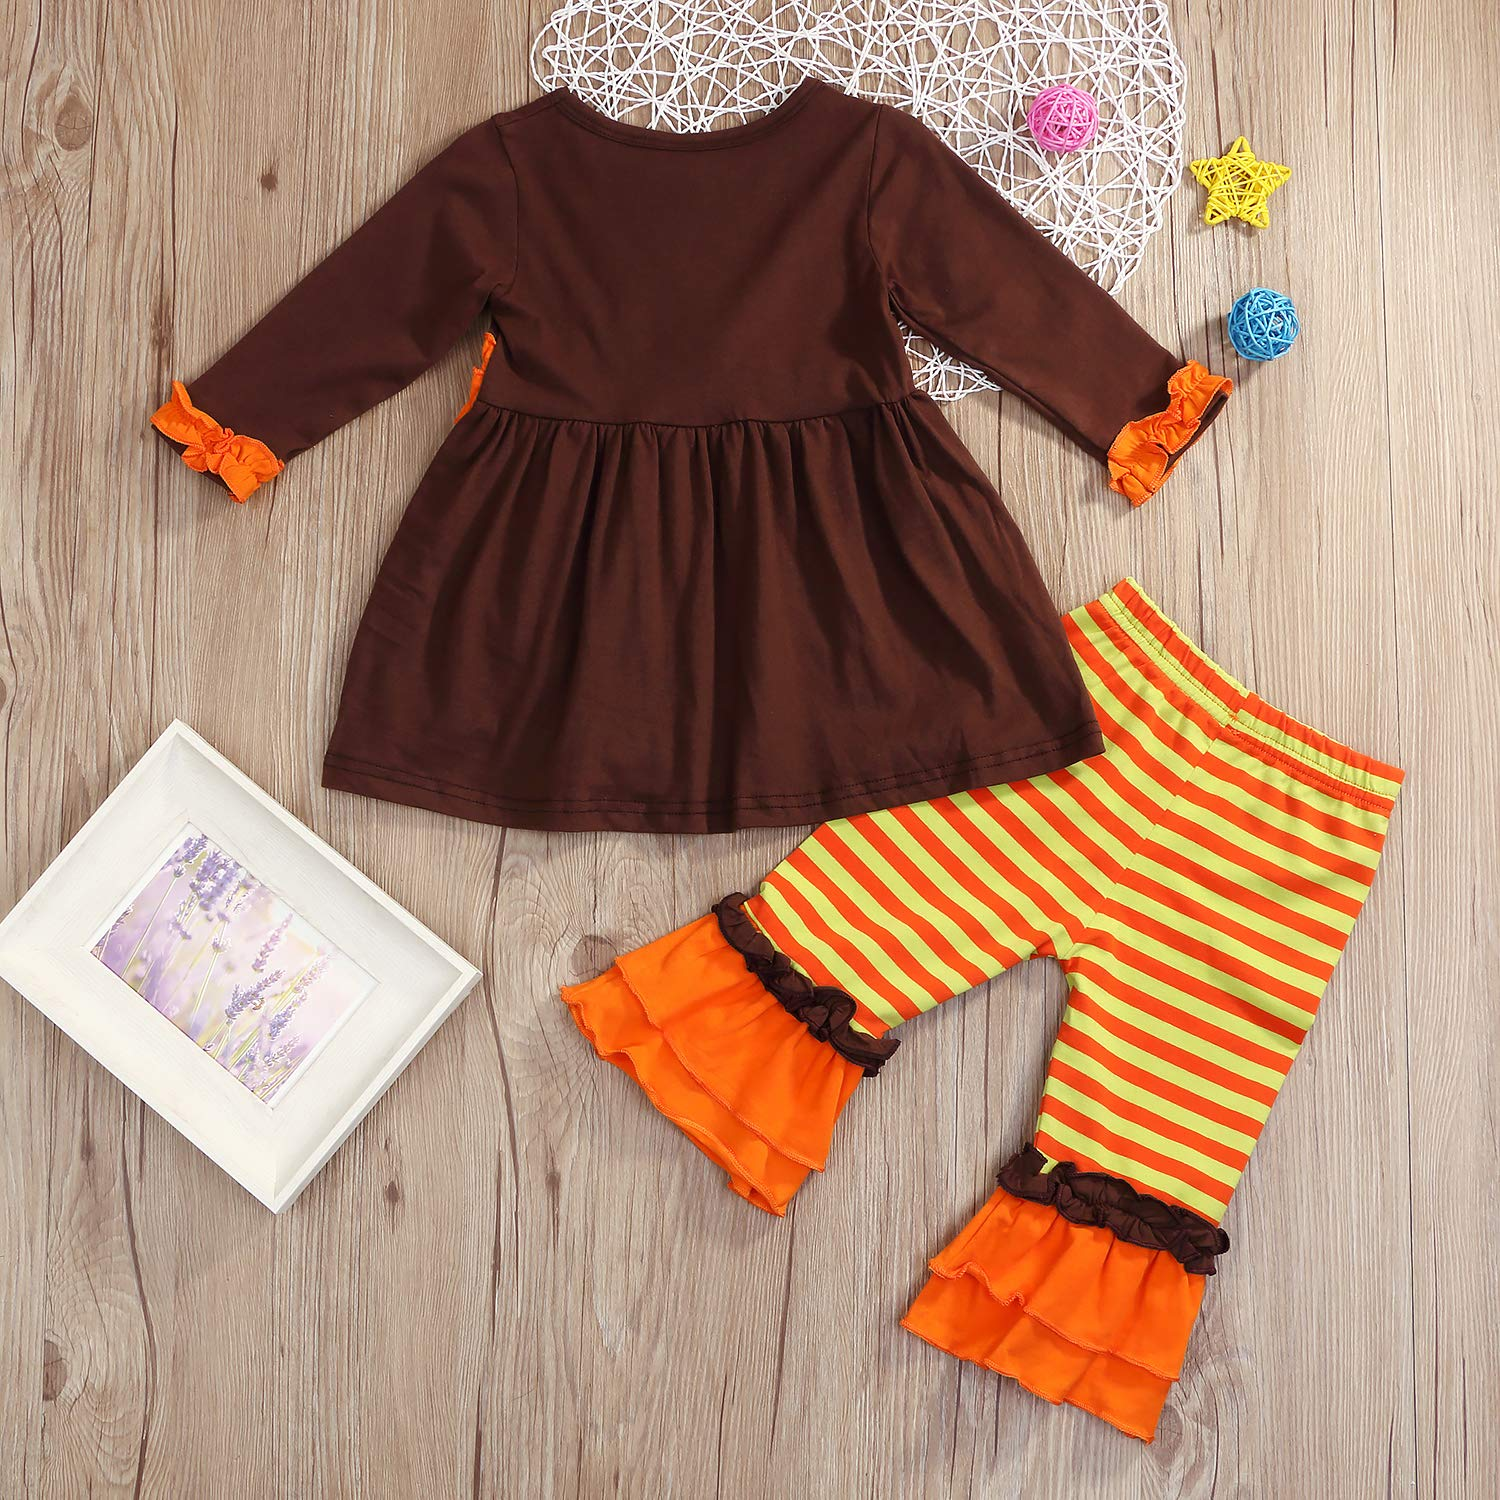 cc36acec53b0 Amazon.com: Toddler Baby Girls Thanksgiving Outfit Turkey Print Ruffle Top+ Pants Clothes Set: Clothing